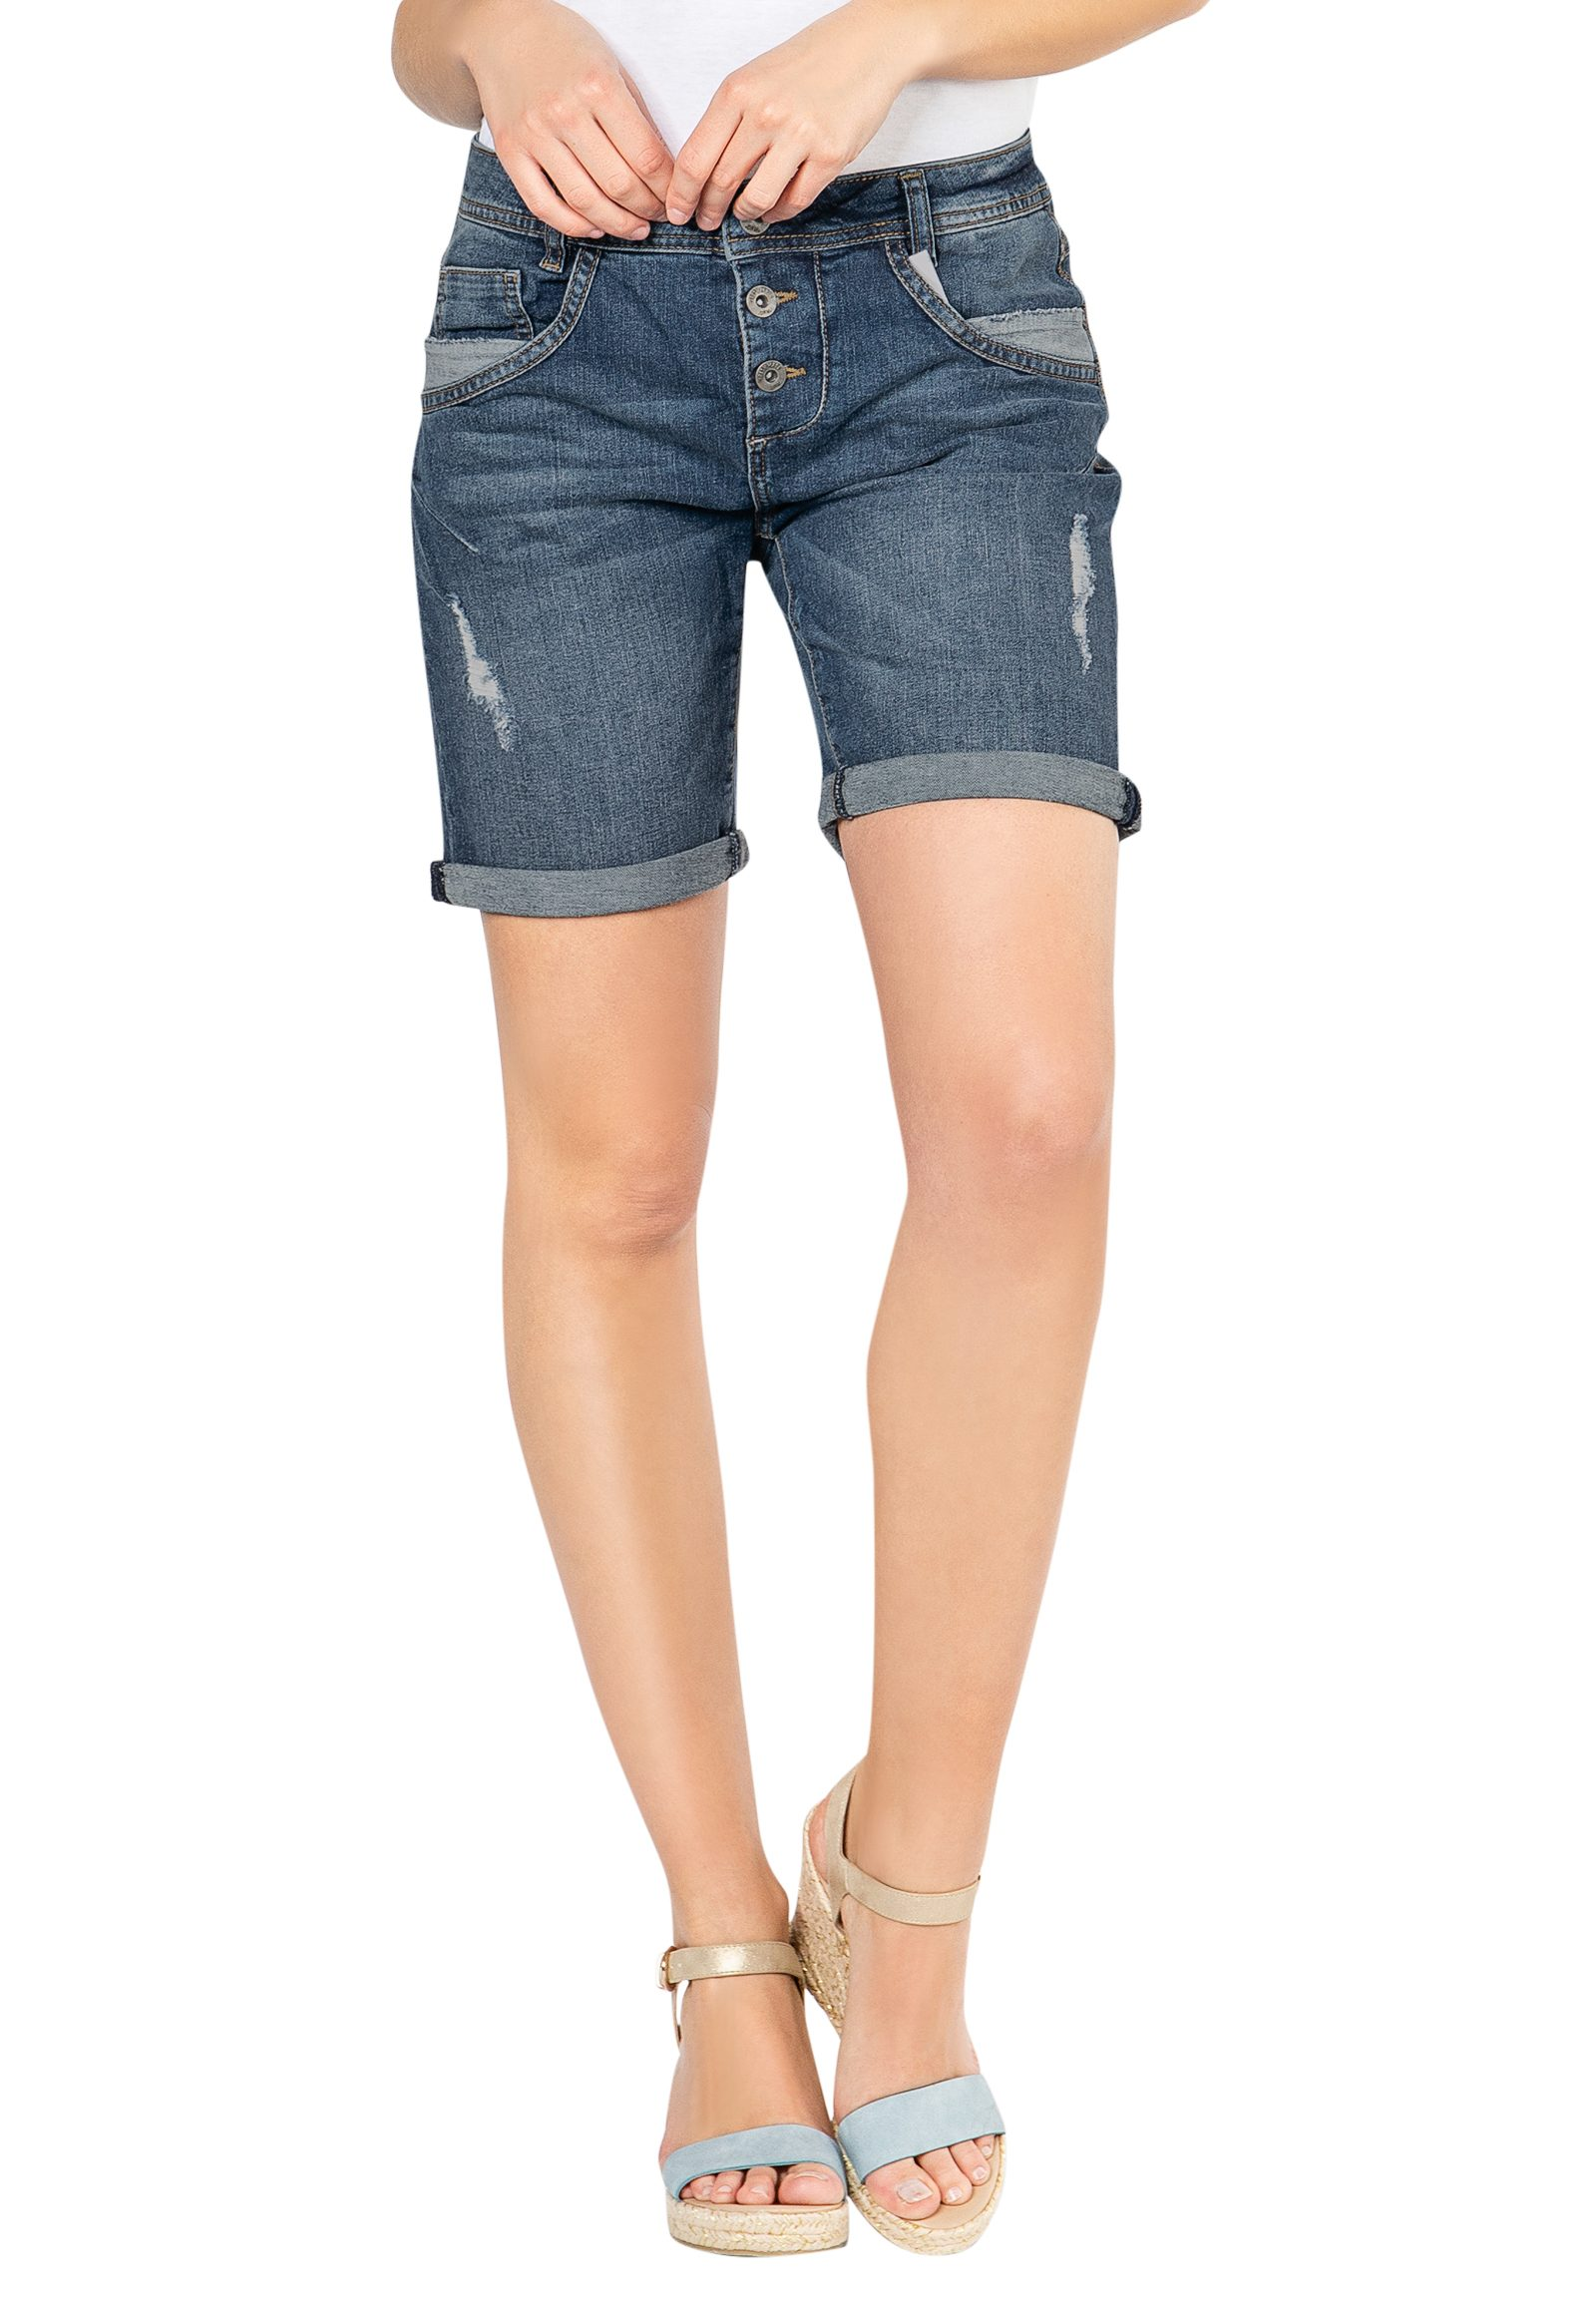 Hosen - Damen Jeans Bermuda › Fresh Made › dunkelblau  - Onlineshop FASHION5